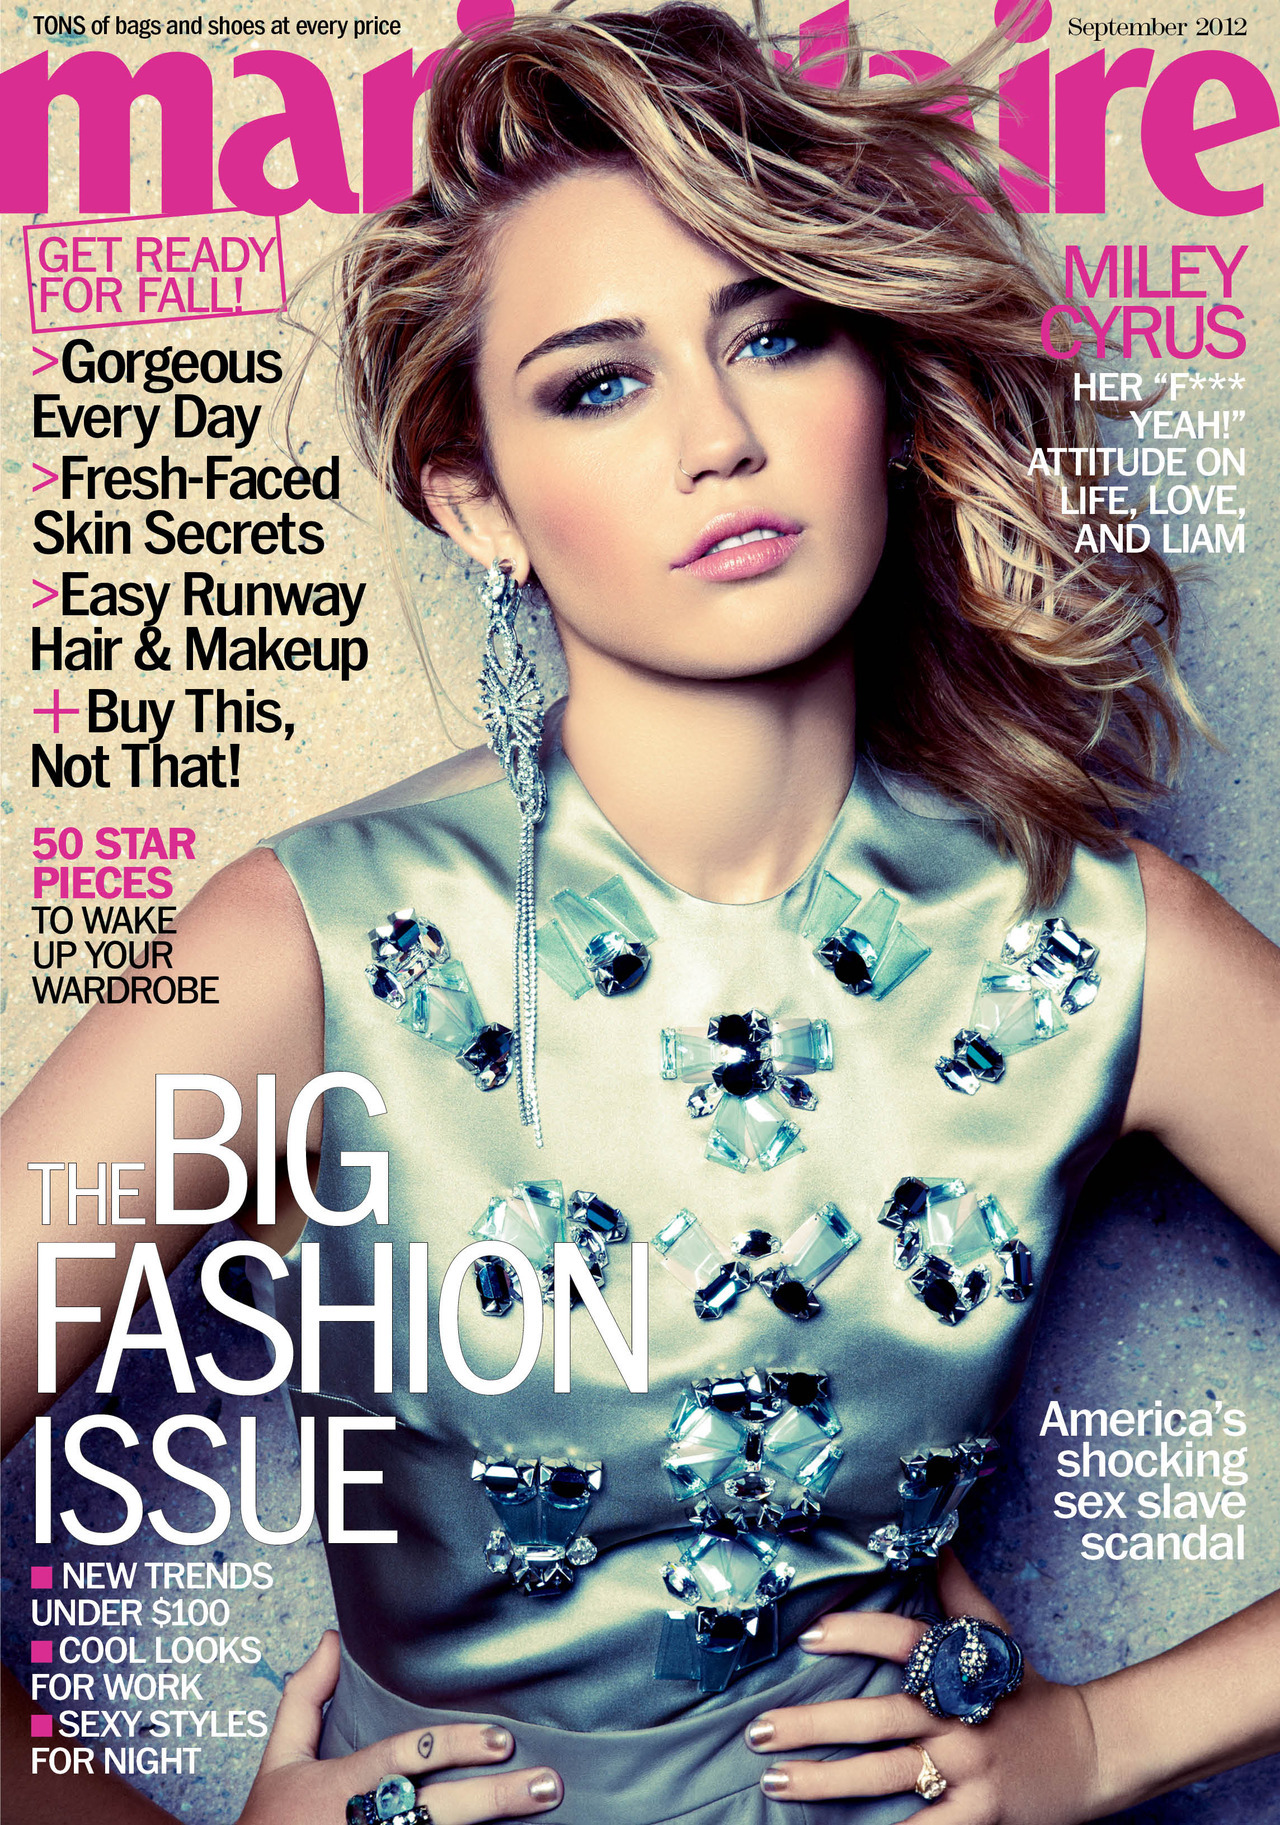 Say hello to our September covergirl! Miley Cyrus (she is wearing Christian Dior). » CLICK HERE « for more pictures.